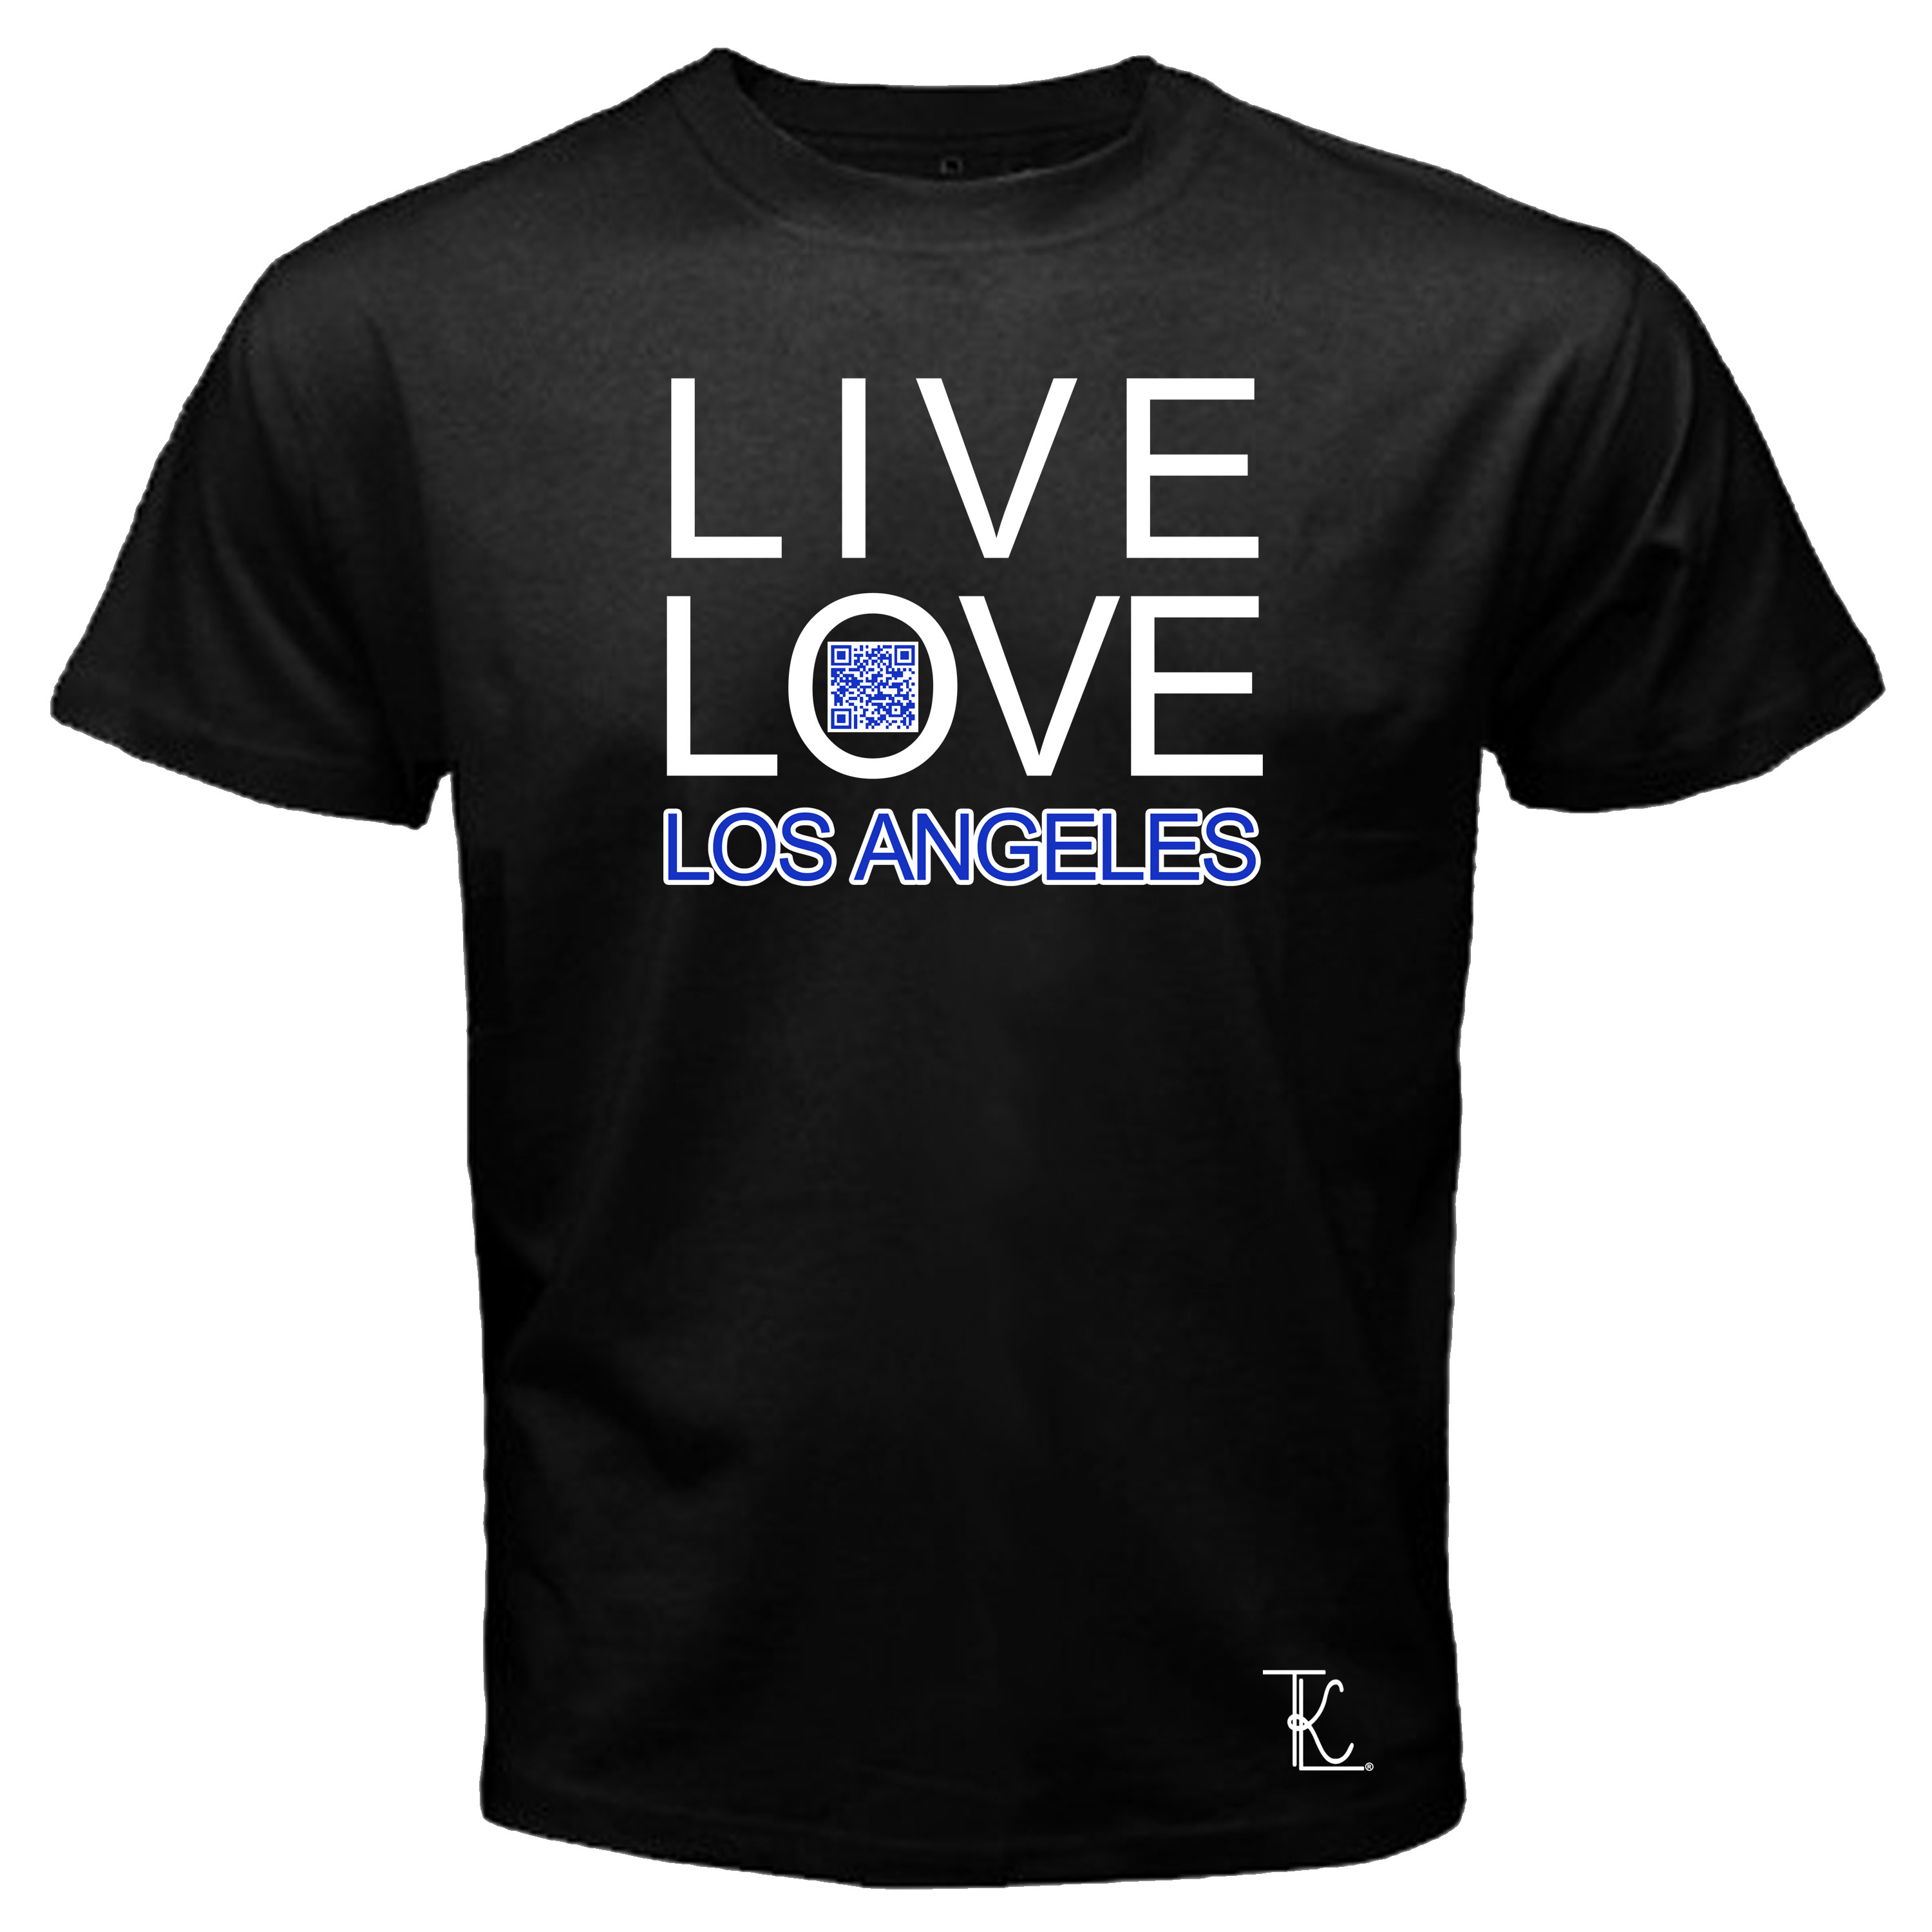 Los angeles clothing stores online